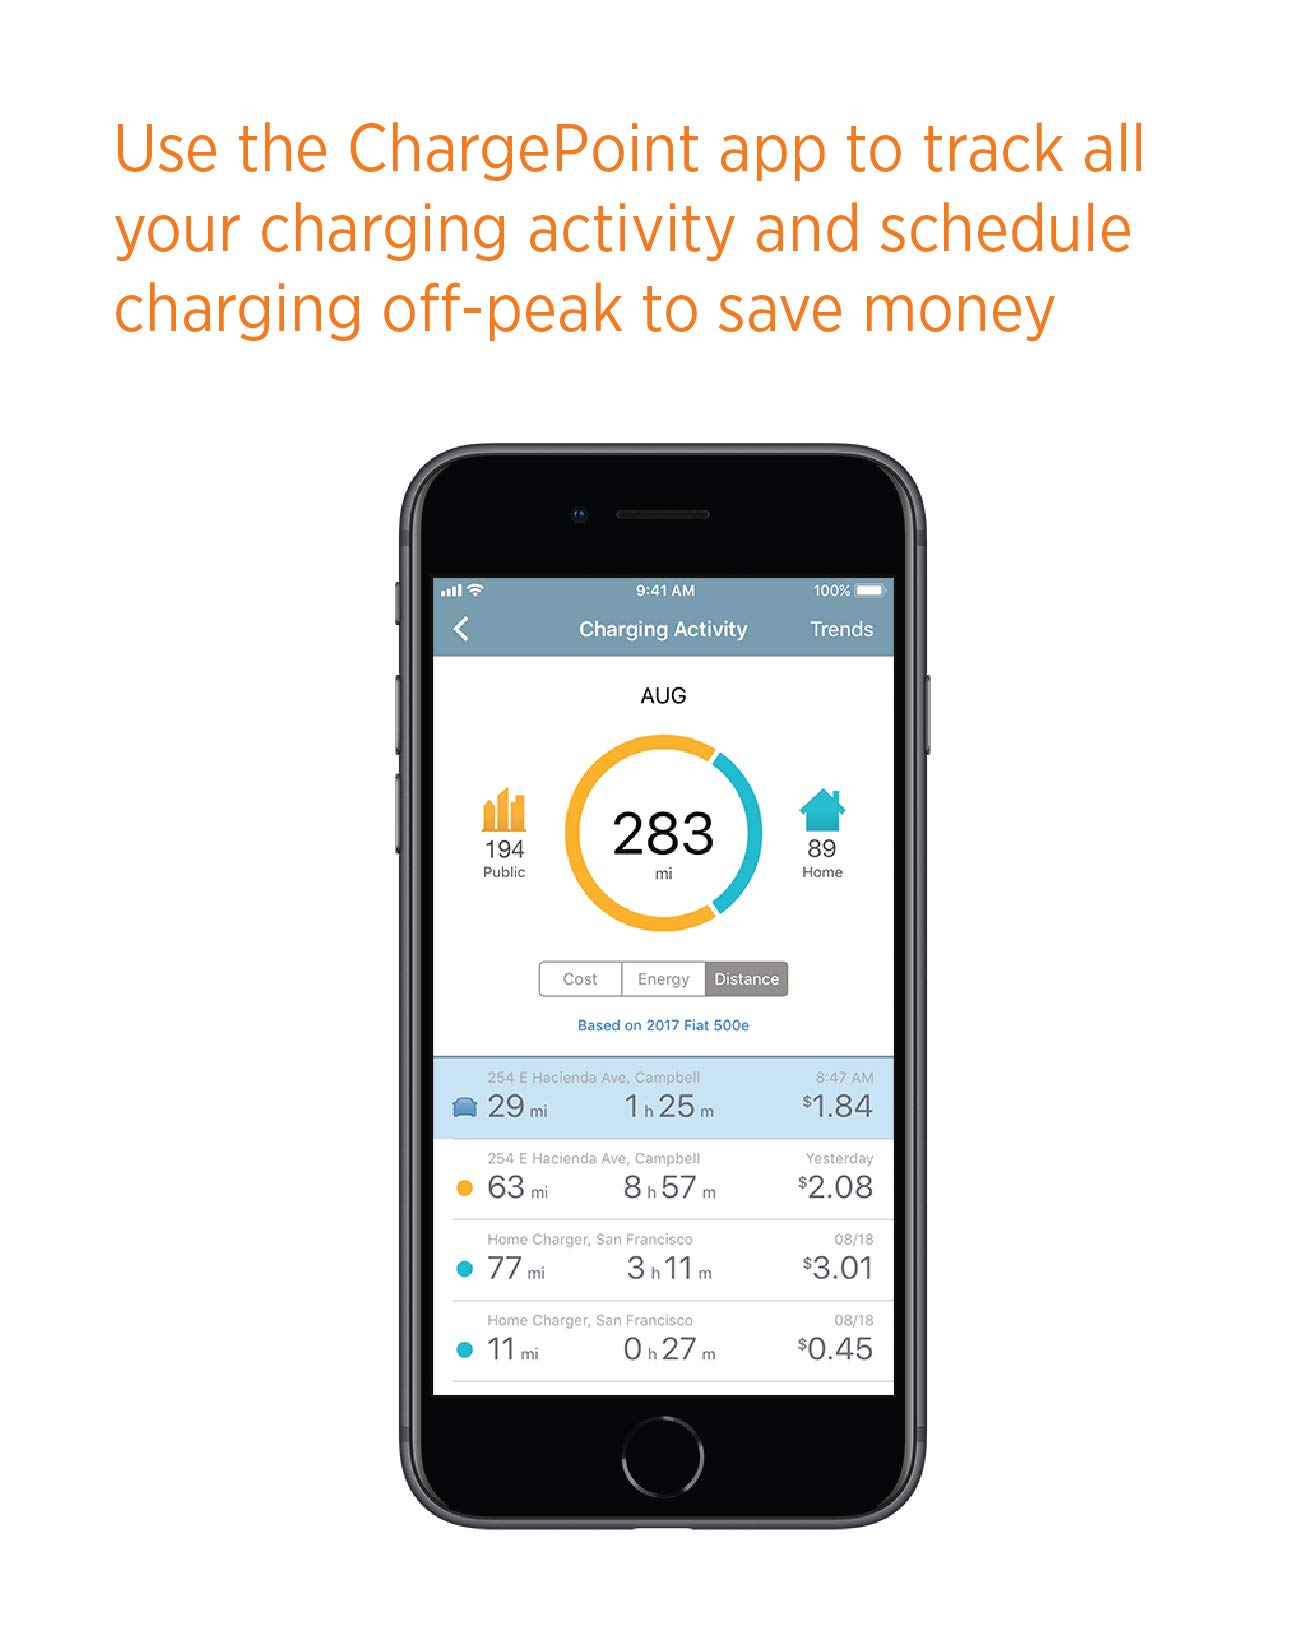 ChargePoint Home WiFi Enabled Electric Vehicle (EV) Charger - Level 2 240V EVSE, 32A Electric Car Charger for All EVs, UL Listed, ENERGY STAR Certified, Hardwired (no outlet needed), 18 Ft Cable by ChargePoint (Image #5)